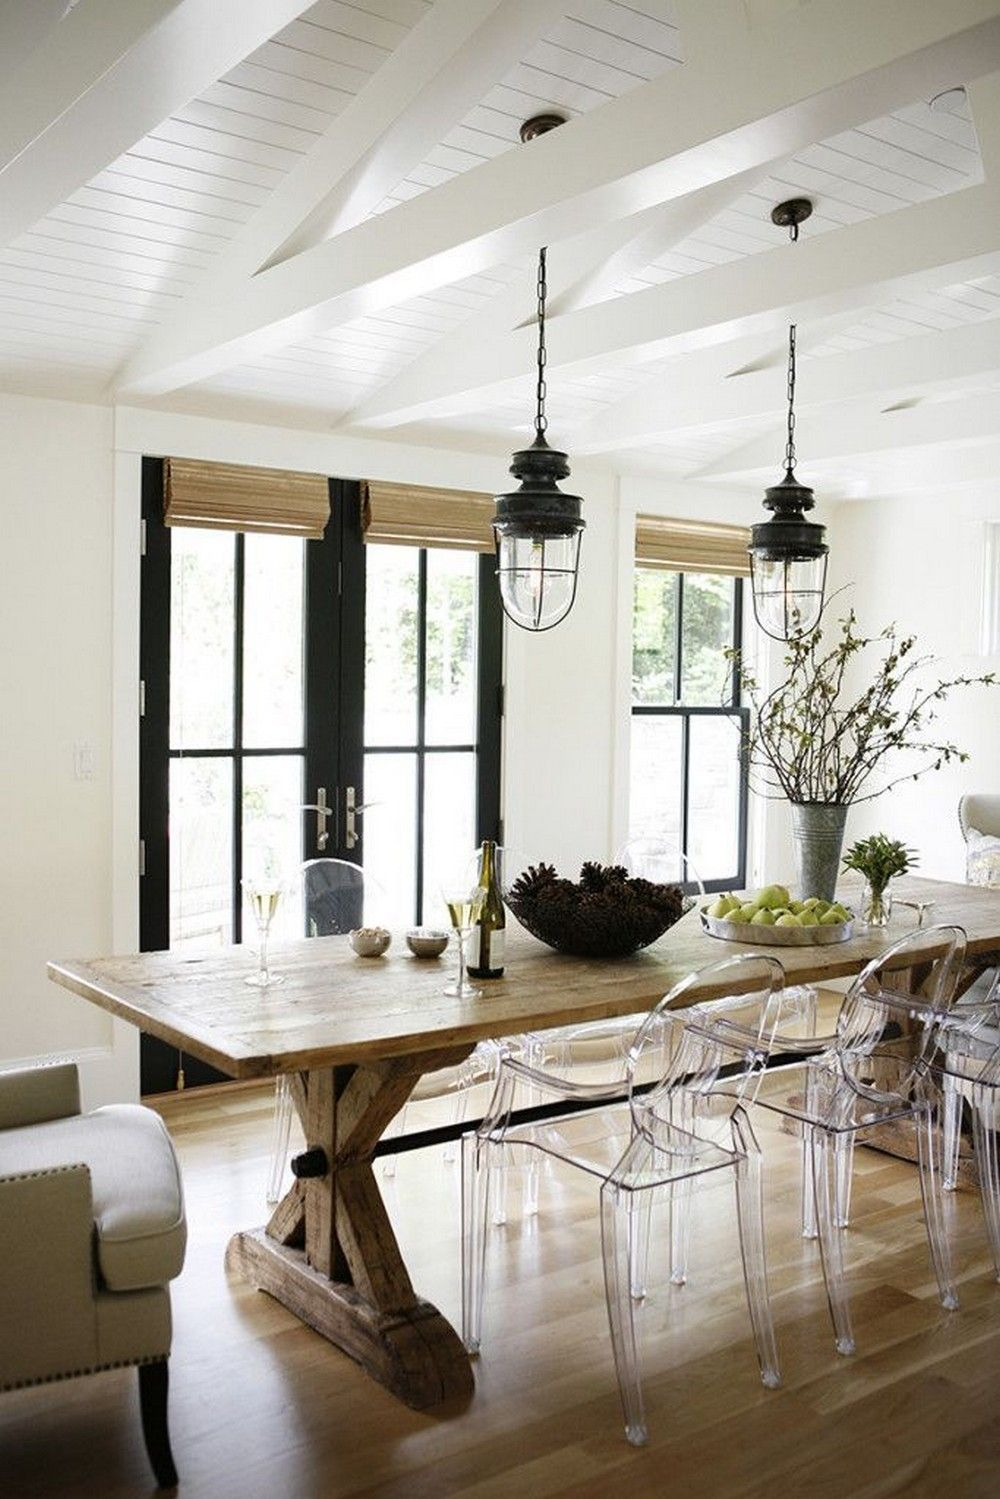 farmhouse kitchen tables sink snake 10 reasons you need a table view in gallery